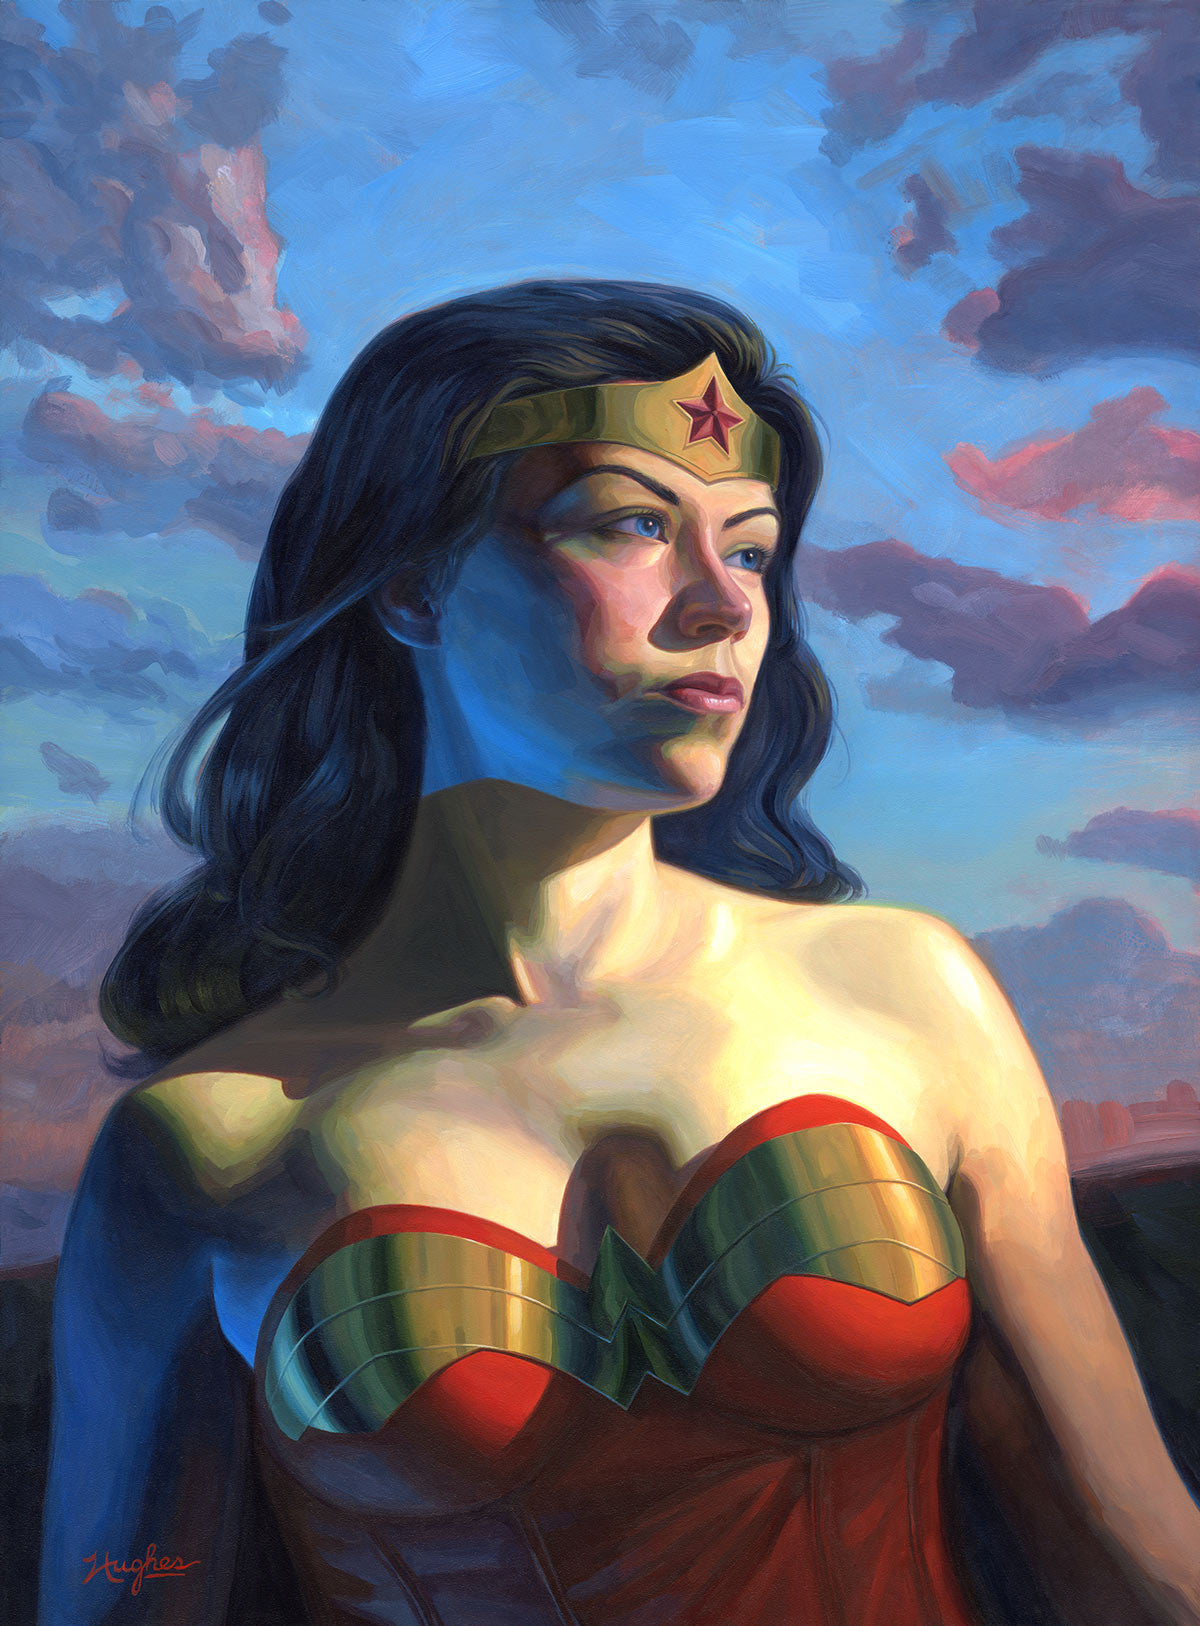 Daughter of Themyscira (Wonder Woman)